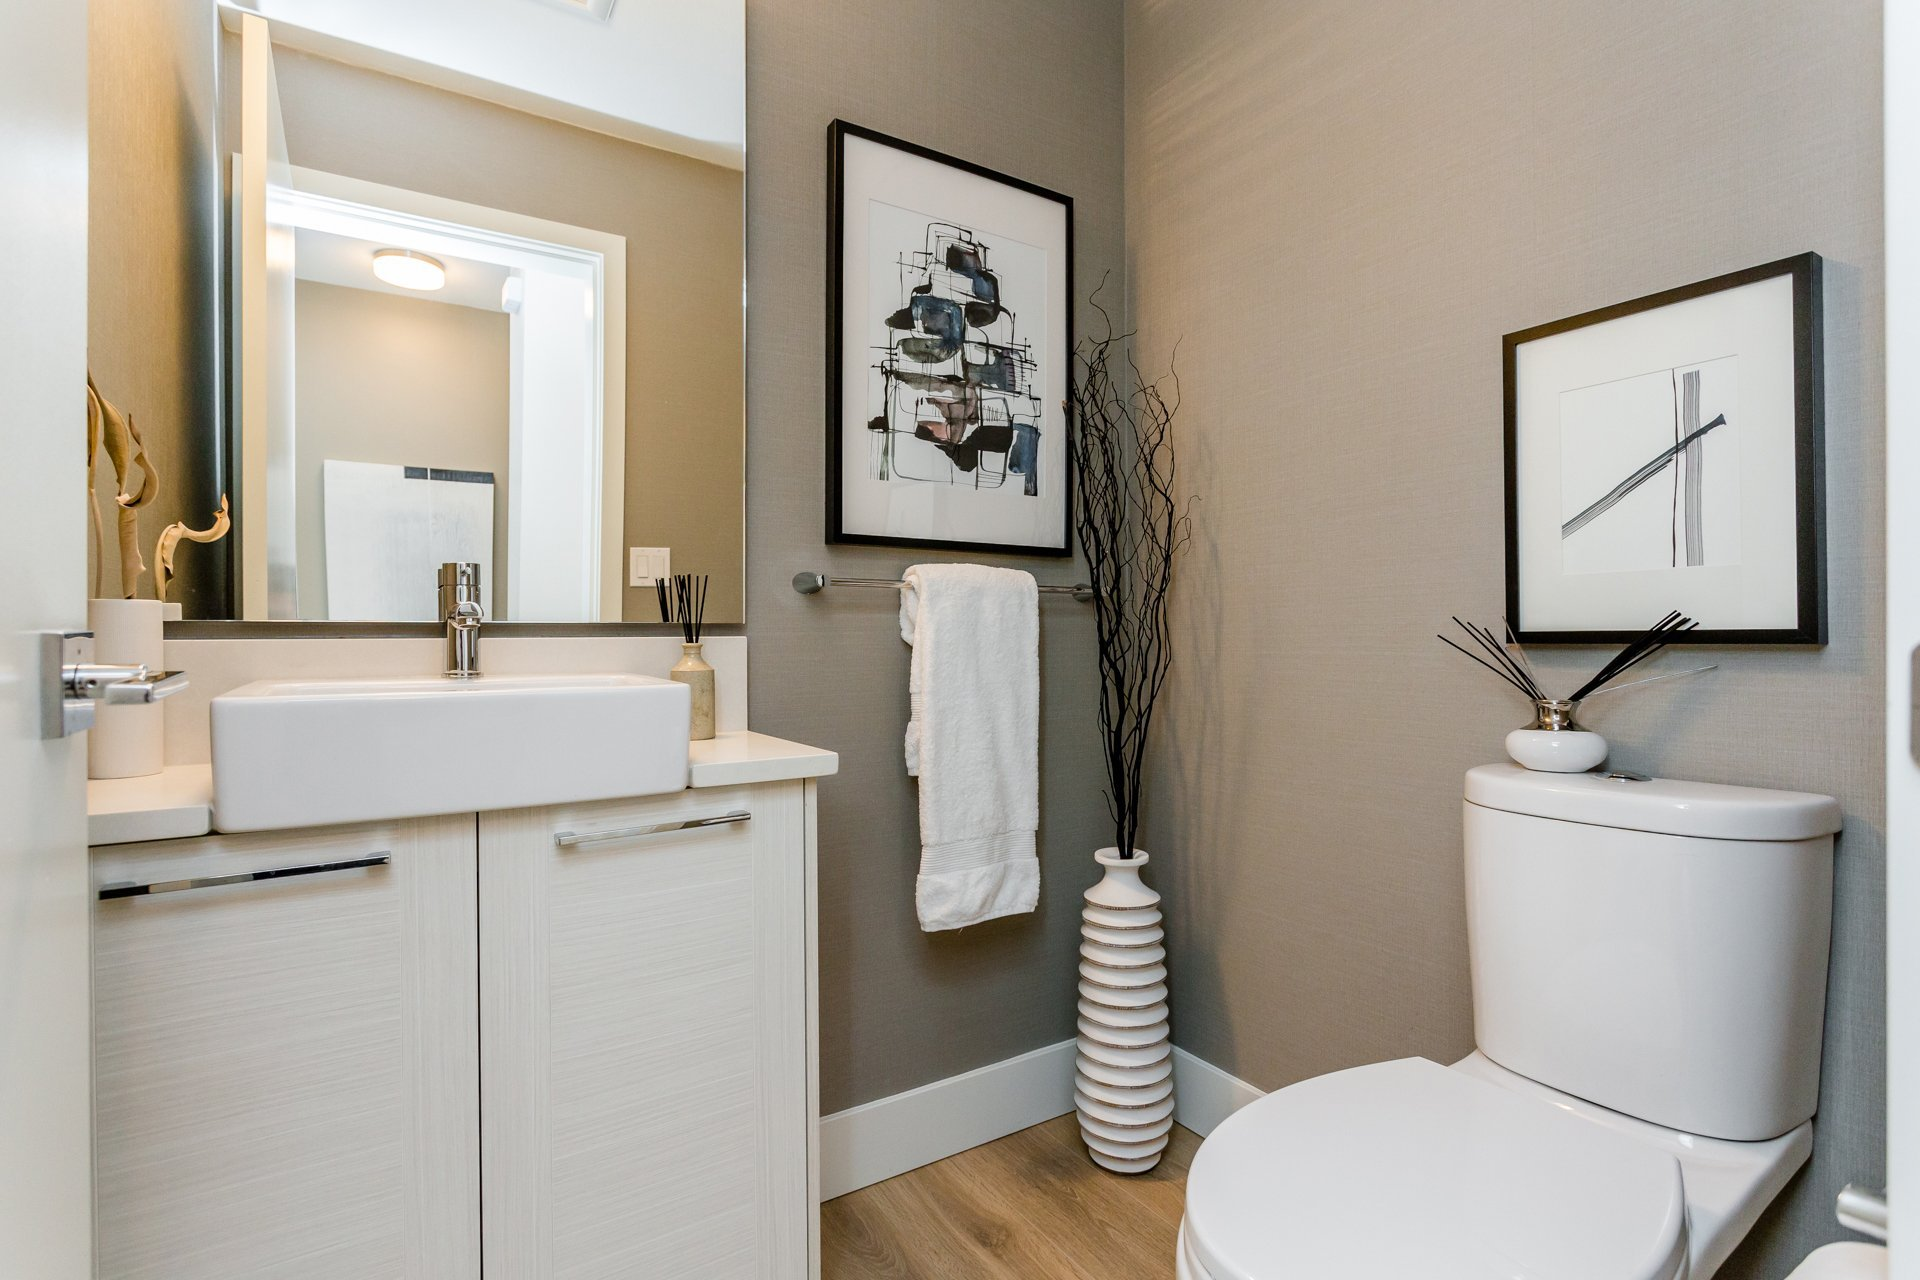 """Photo 22: Photos: 8 8217 204B Street in Langley: Willoughby Heights Townhouse for sale in """"EVERLY GREEN"""" : MLS®# R2236678"""